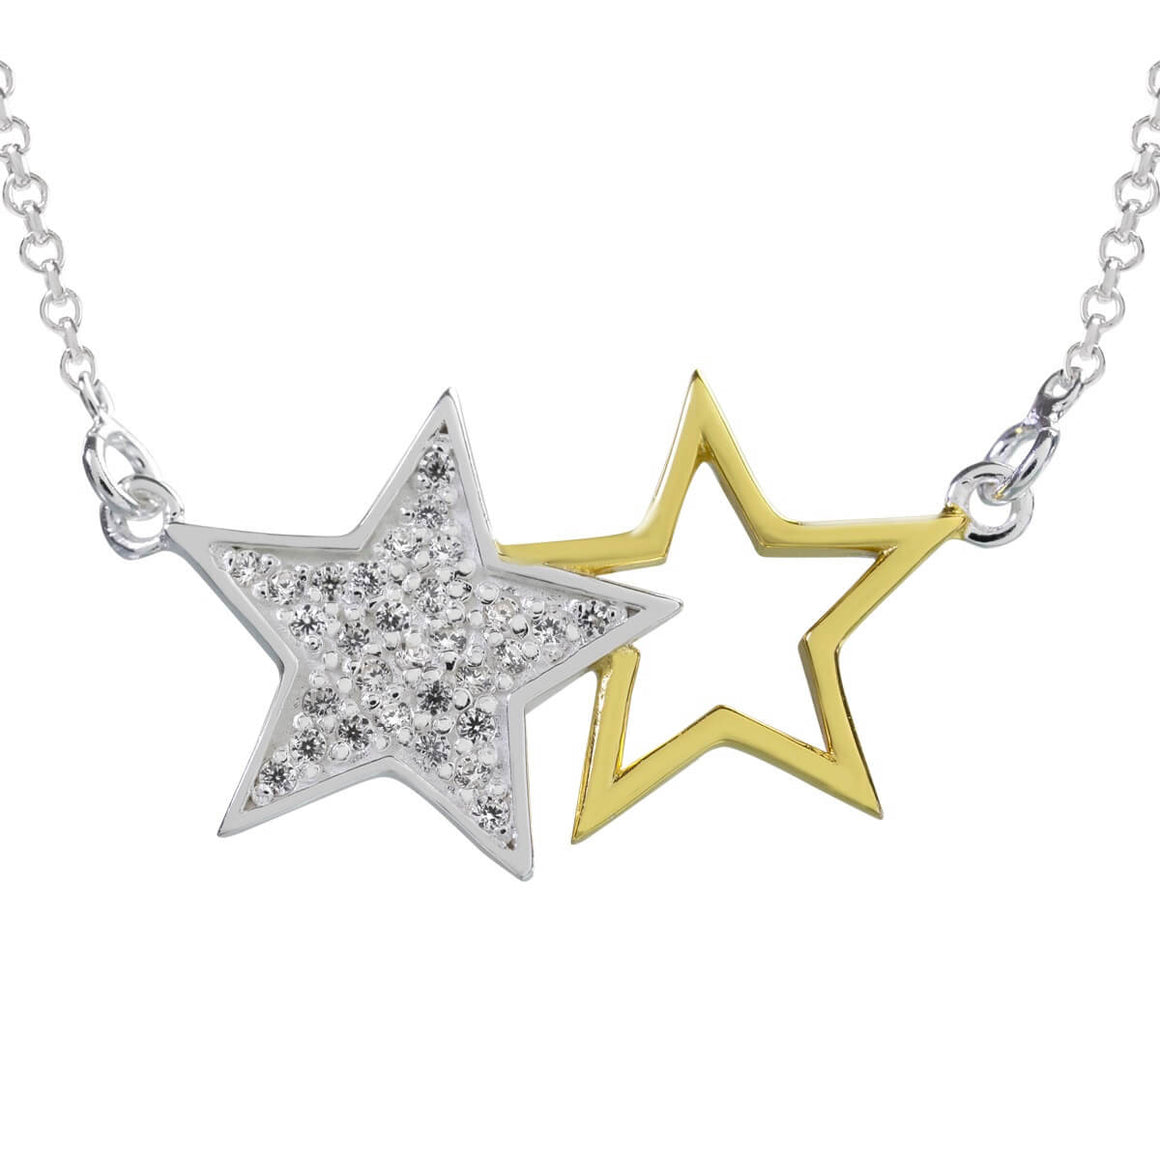 Sophie Oliver Valencia Double Star Necklace